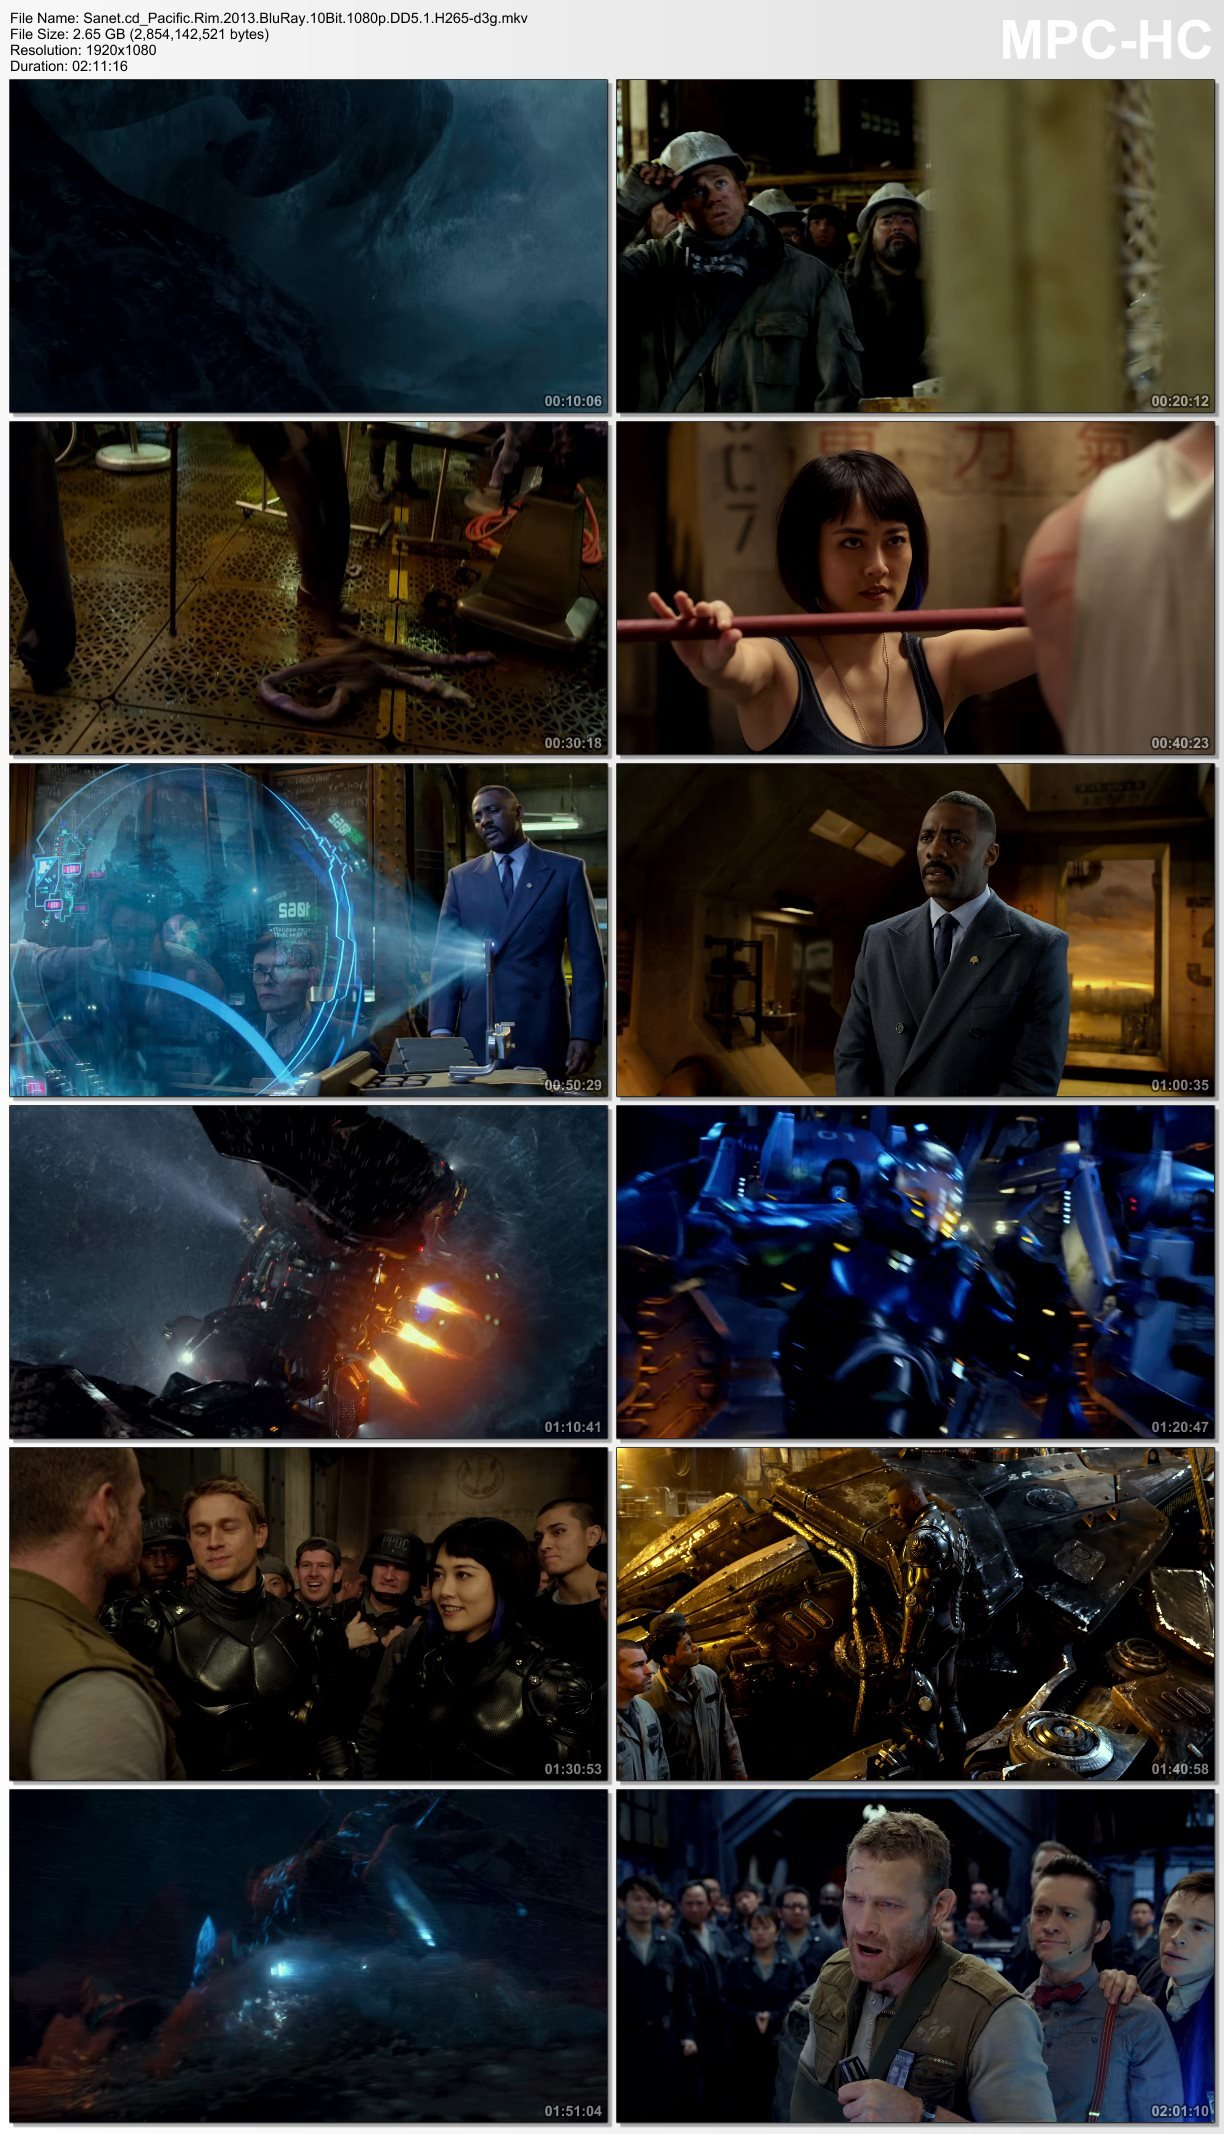 Download Pacific Rim 2013 BluRay 10Bit 1080p DD5.1 H265 ... Pacific Rim 2013 Bluray